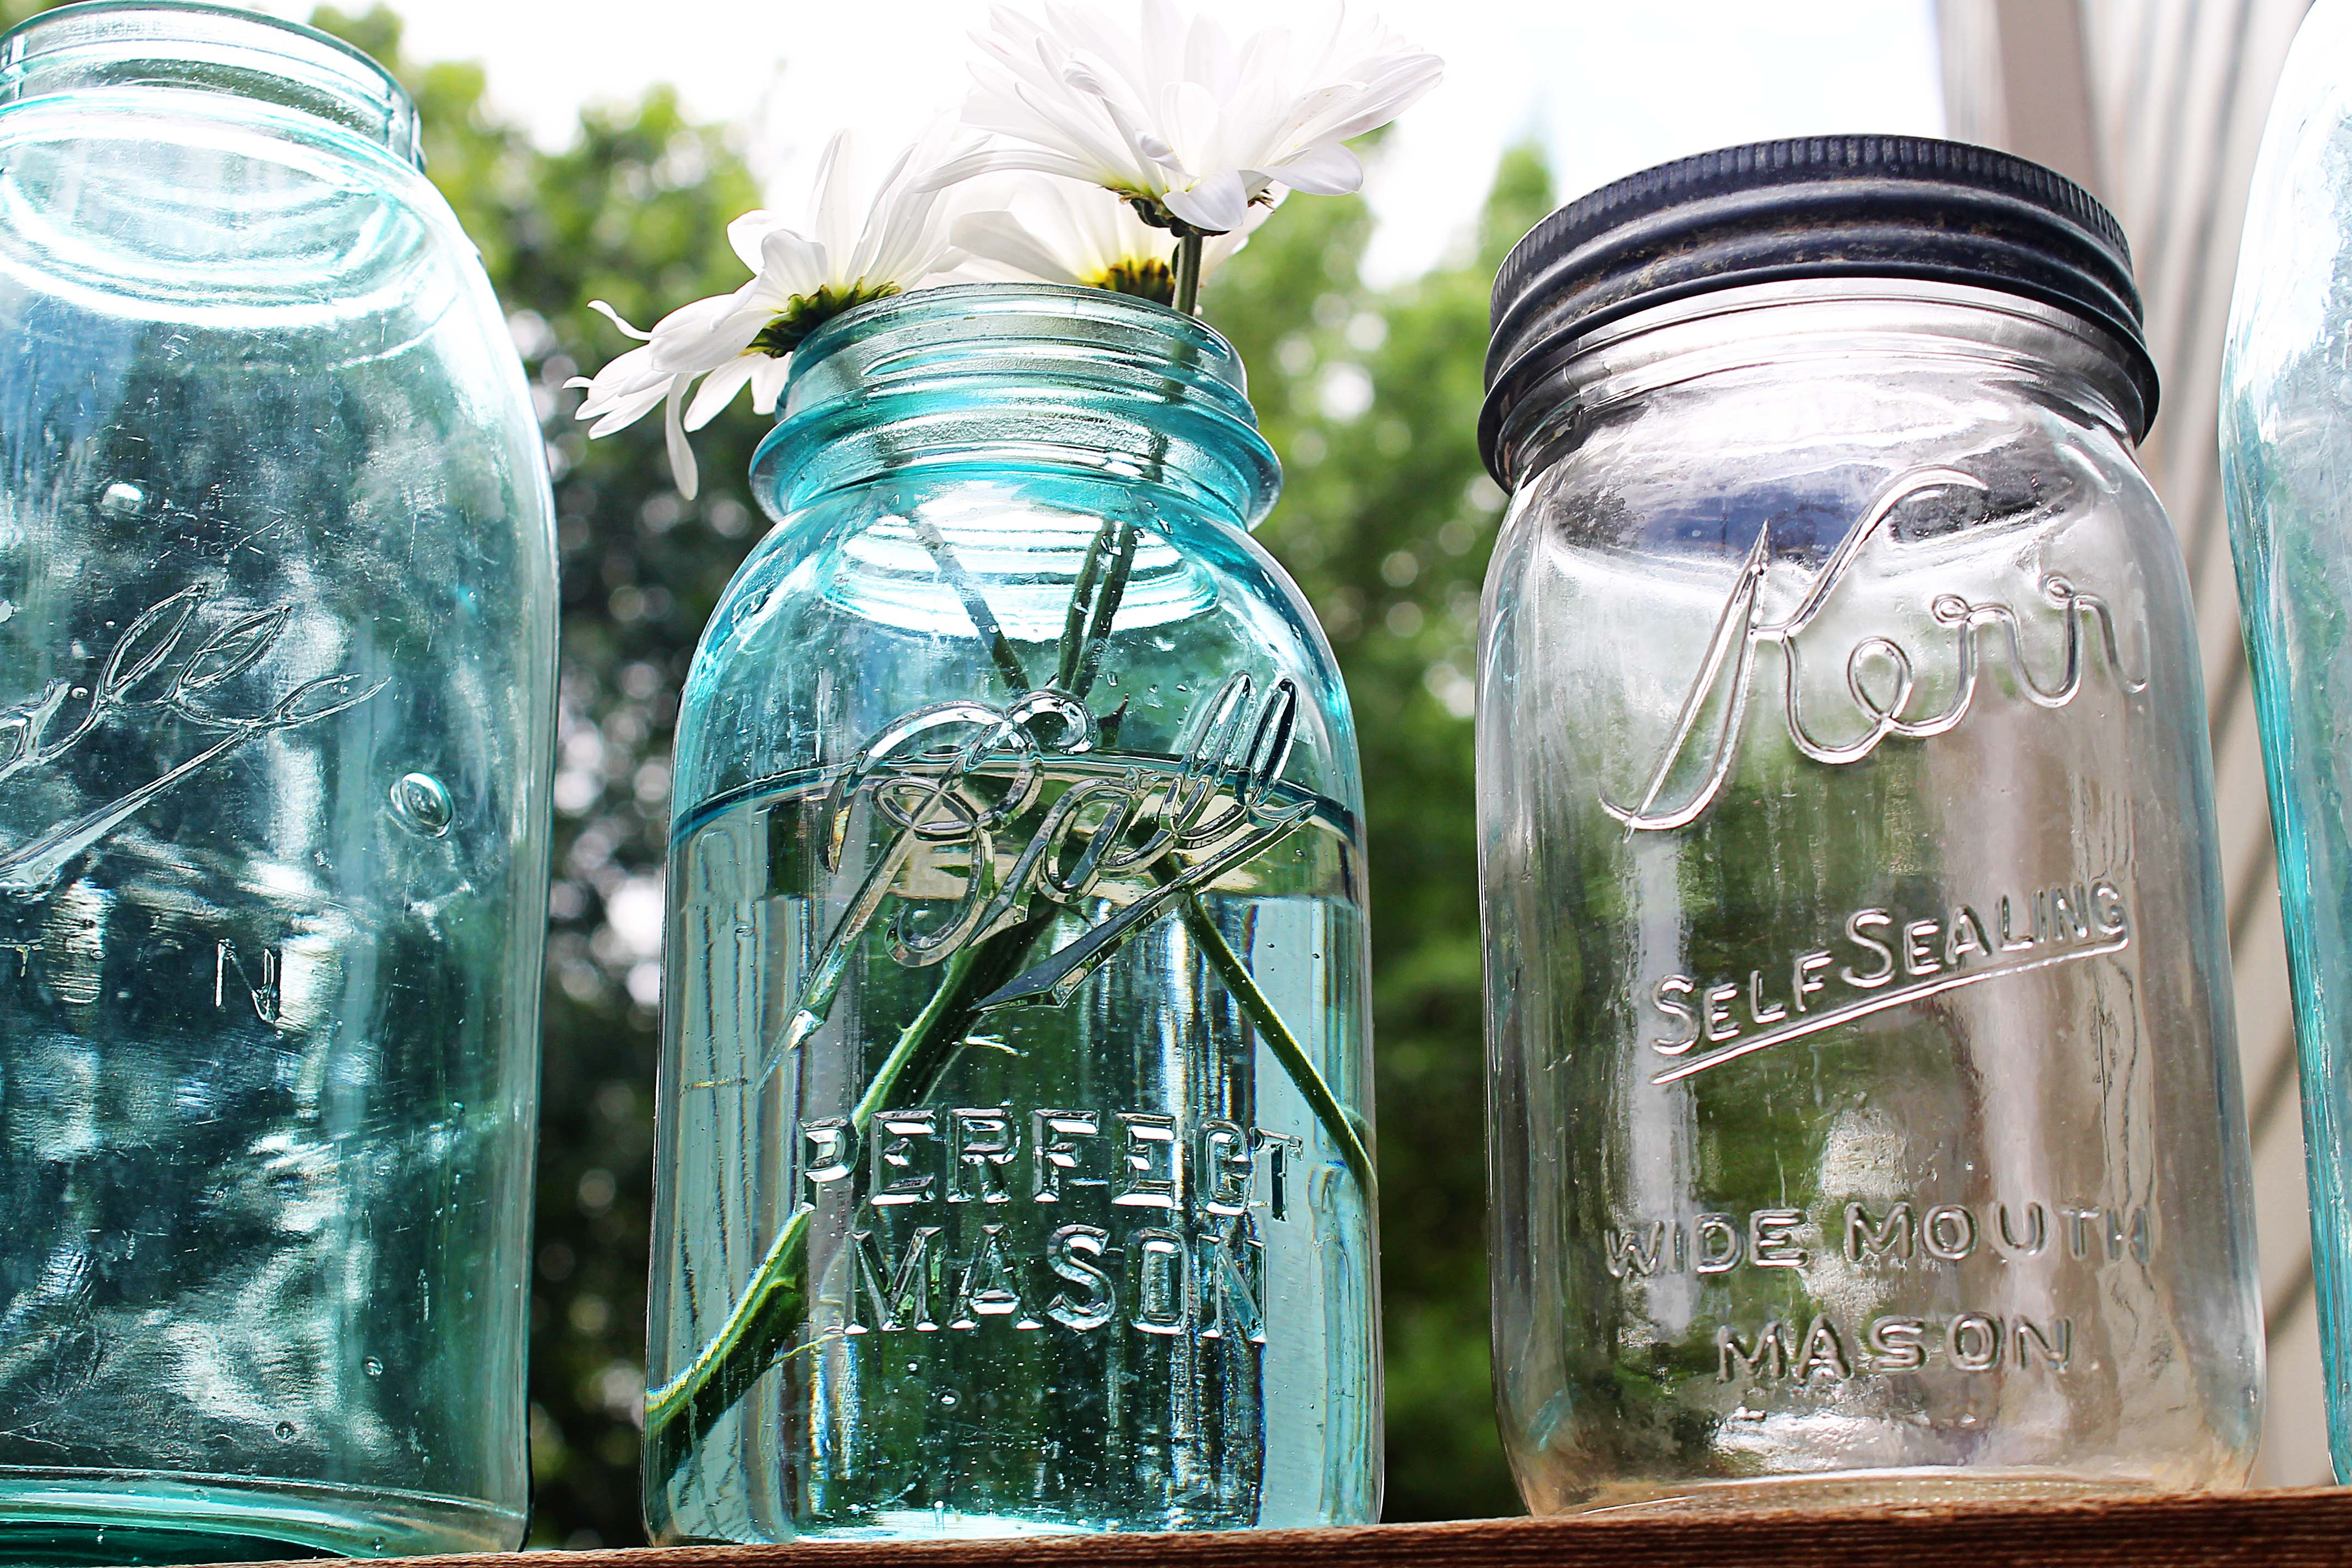 Dating old kerr mason jars